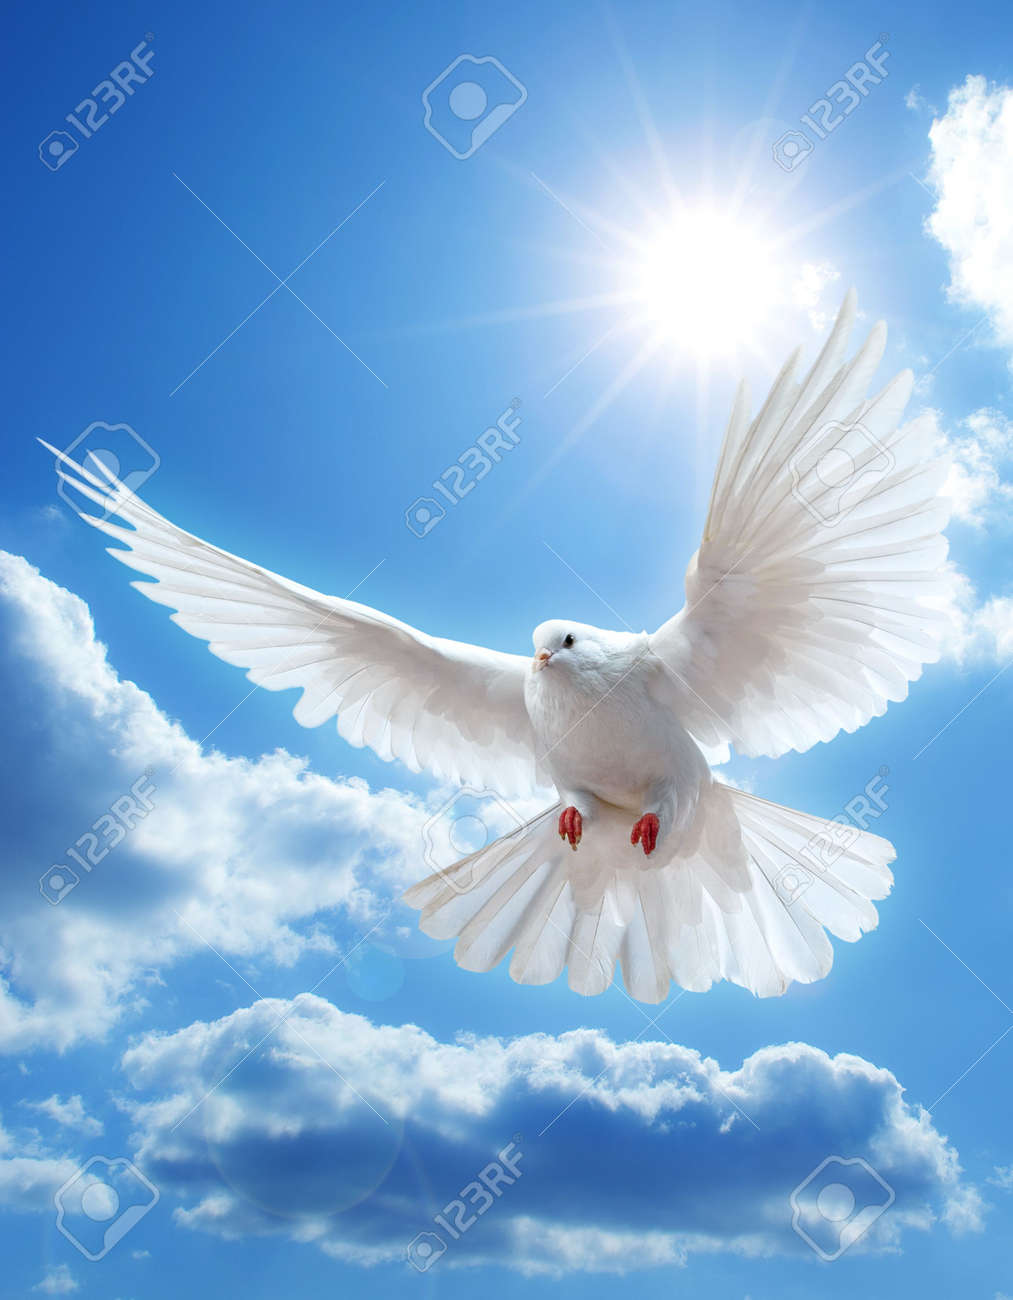 Dove in the air with wings wide open in-front of the sun - 5888785